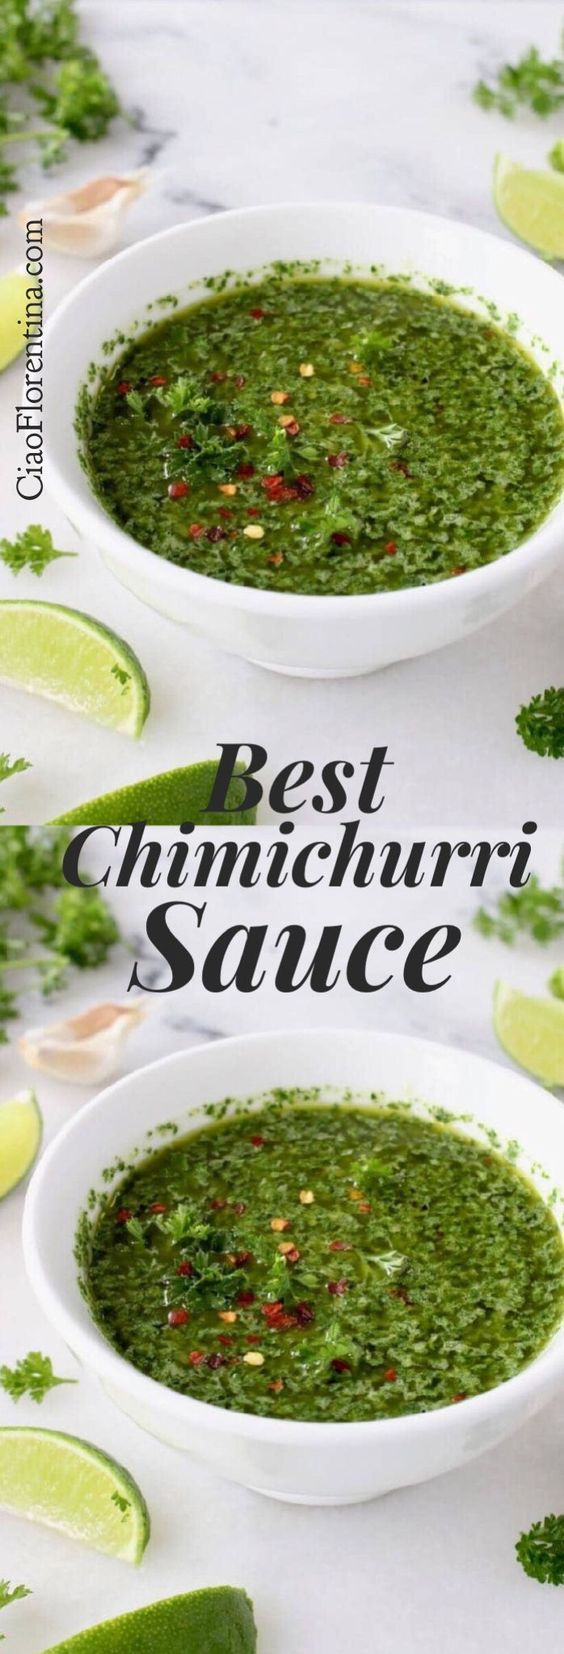 Best Argentinian Style Chimichurri Sauce with Parsley, Garlic and Oregano | CiaoFlorentina.com @CiaoFlorentina